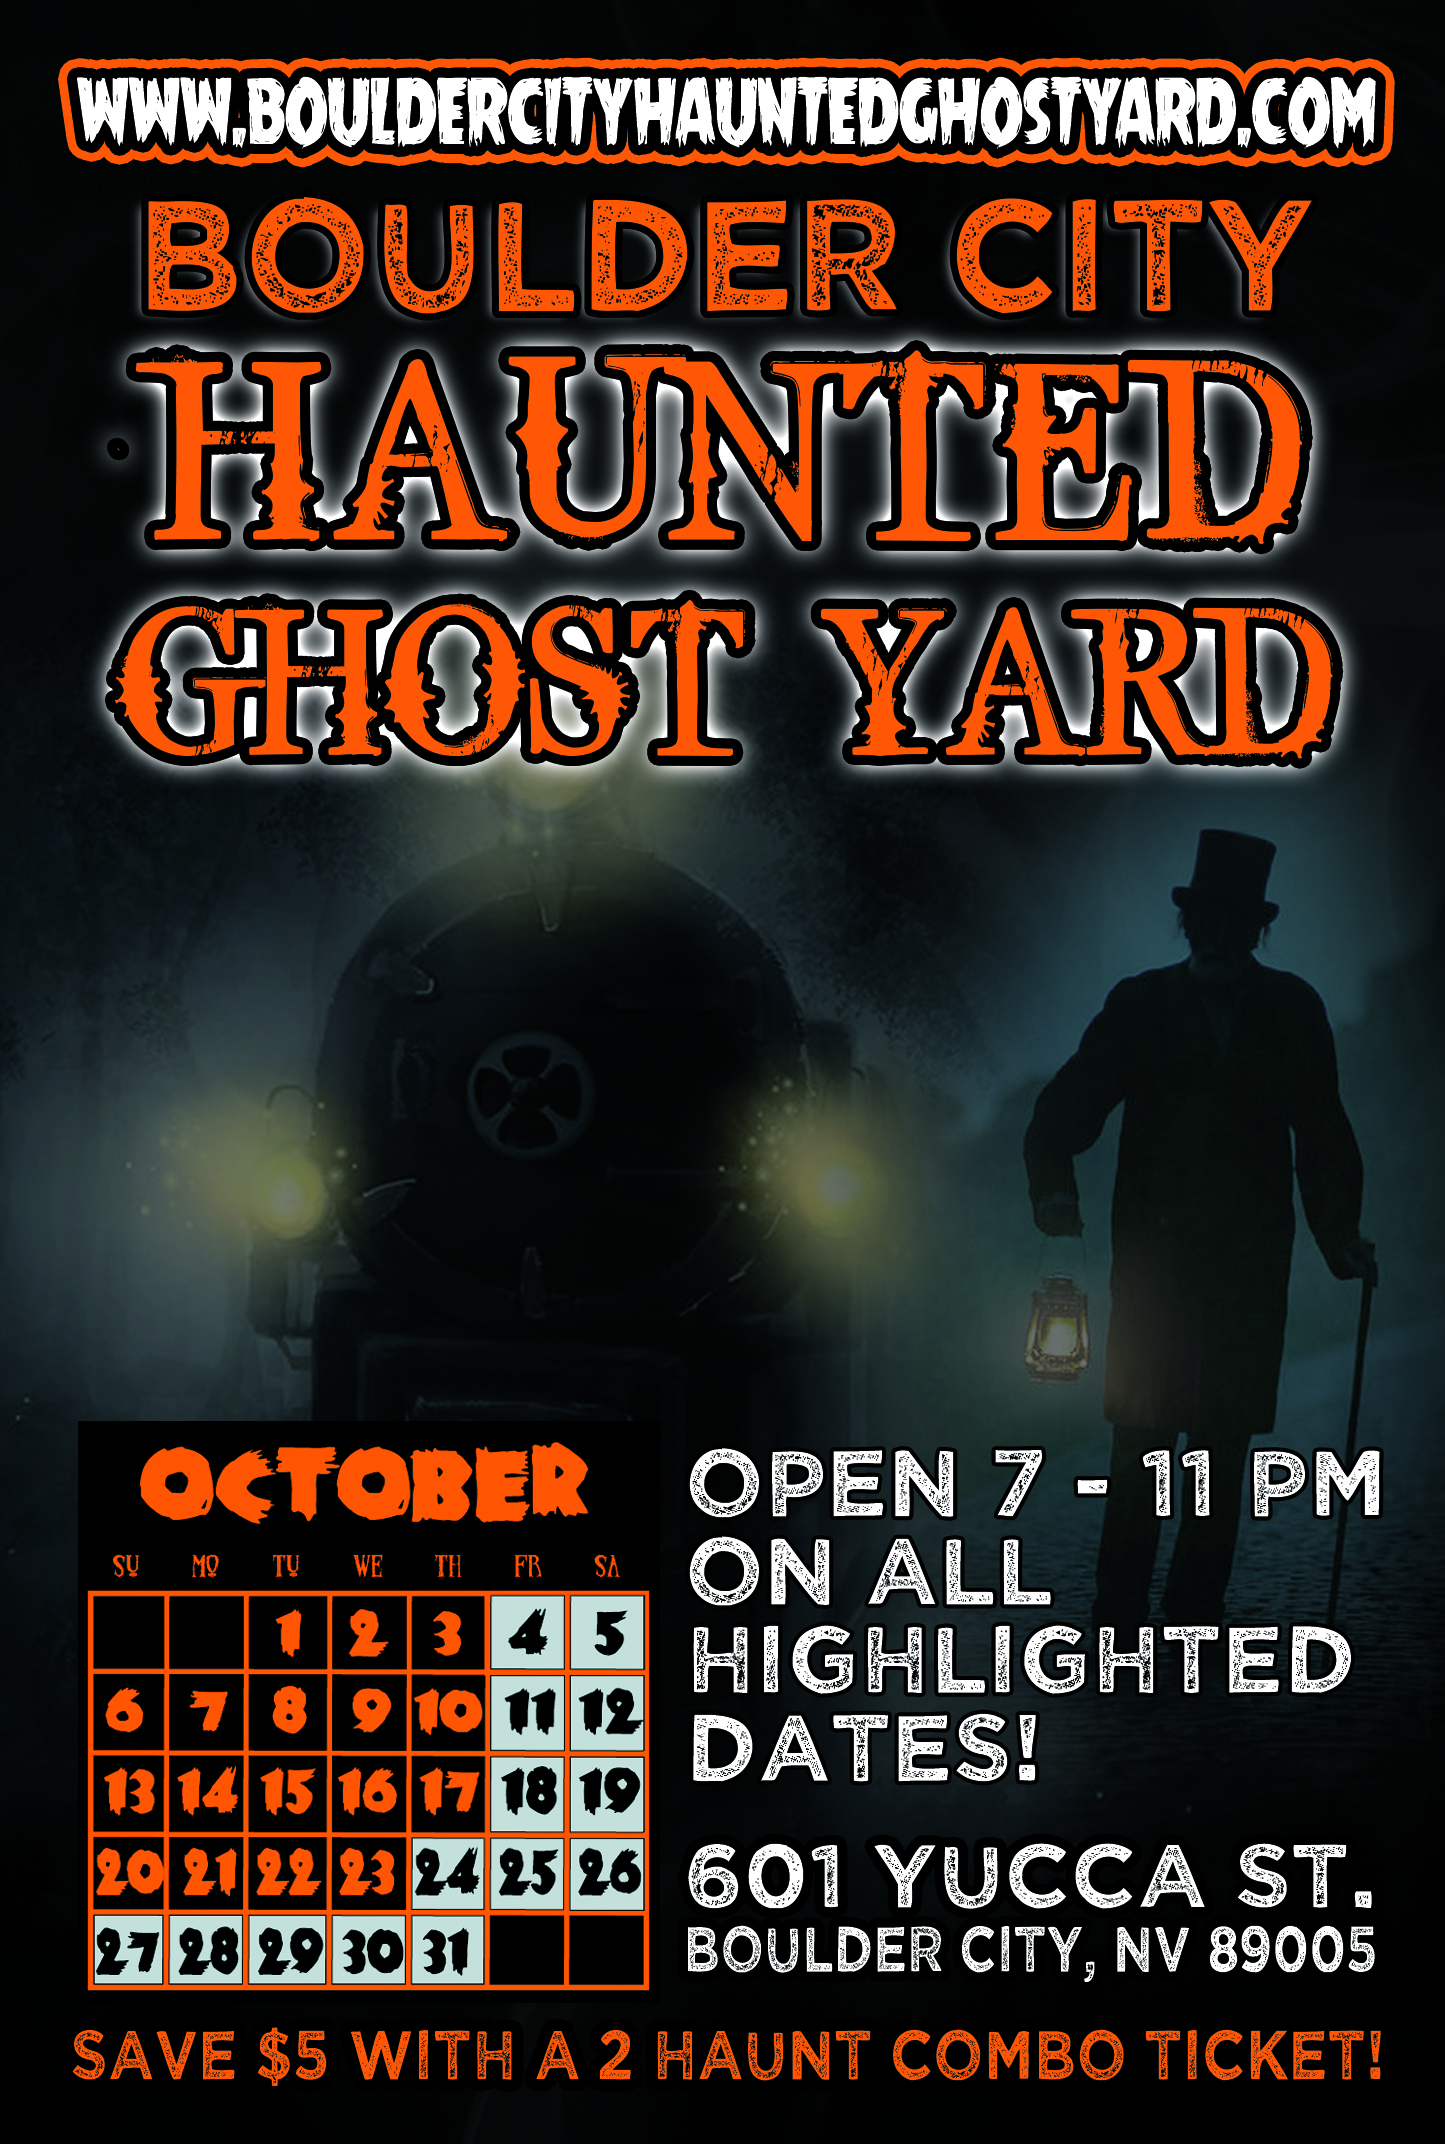 Haunted Ghost Yard Flyer Boulder City, NV